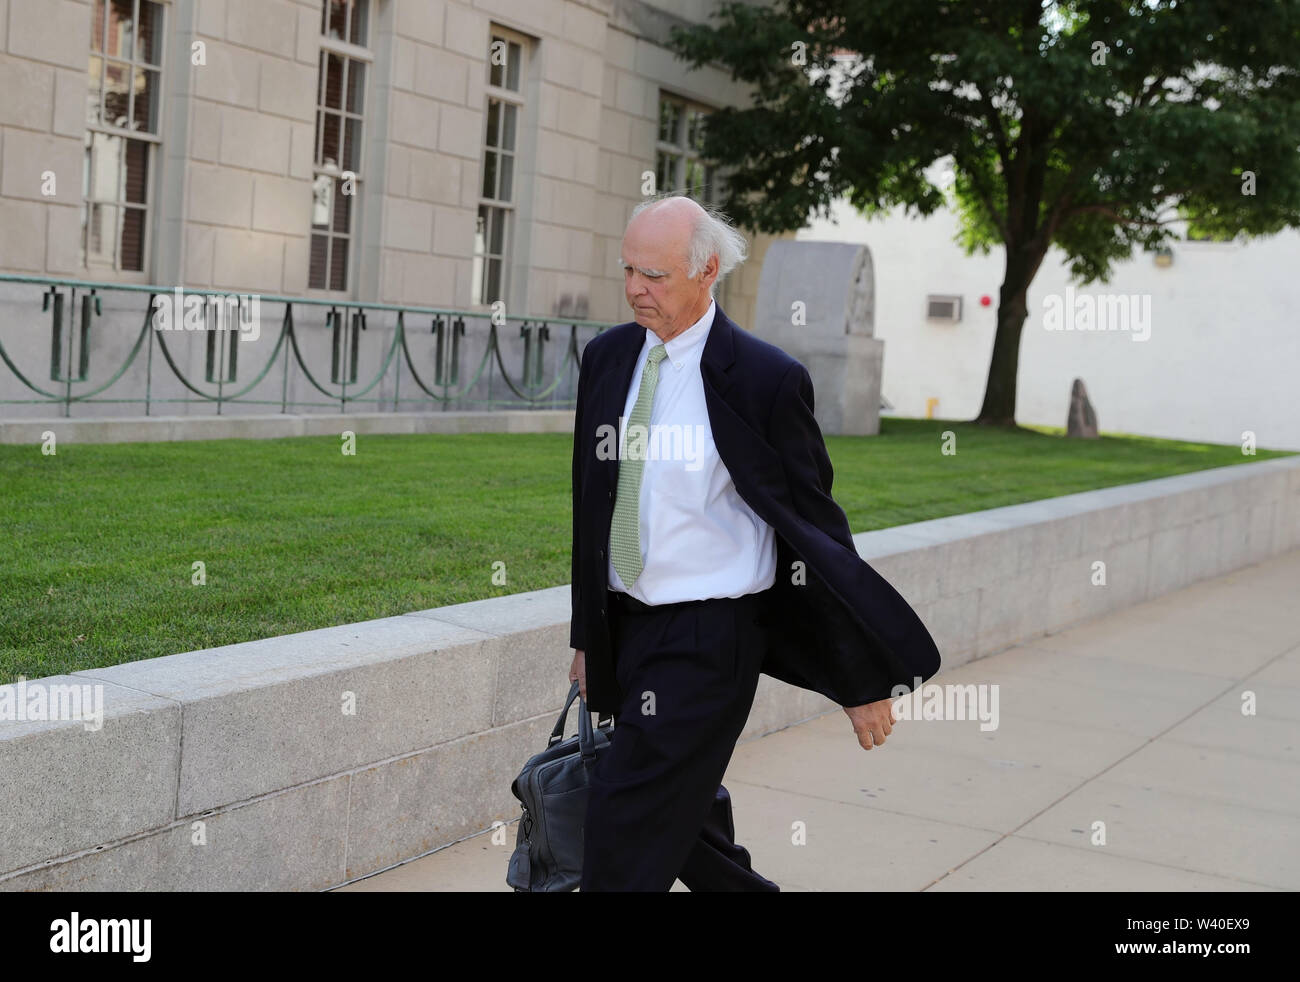 (190718) -- PEORIA (U.S.), July 18, 2019 (Xinhua) -- Robert Tucker, defense attorney for Brendt Christensen, heads to a federal courthouse building in Peoria, Illinois, the United States, on July 18, 2019. Brendt Christensen, the kidnapper and killer of Chinese scholar Zhang Yingying in 2017, was sentenced on Thursday to life imprisonment without possibility of release, Judge James Shadid announced the verdict in a federal court of Peoria in the U.S. state of Illinois, after the jury failed to reach a unanimous decision on whether he should be sentenced to death or life in prison. (Xinhua/Wang - Stock Image